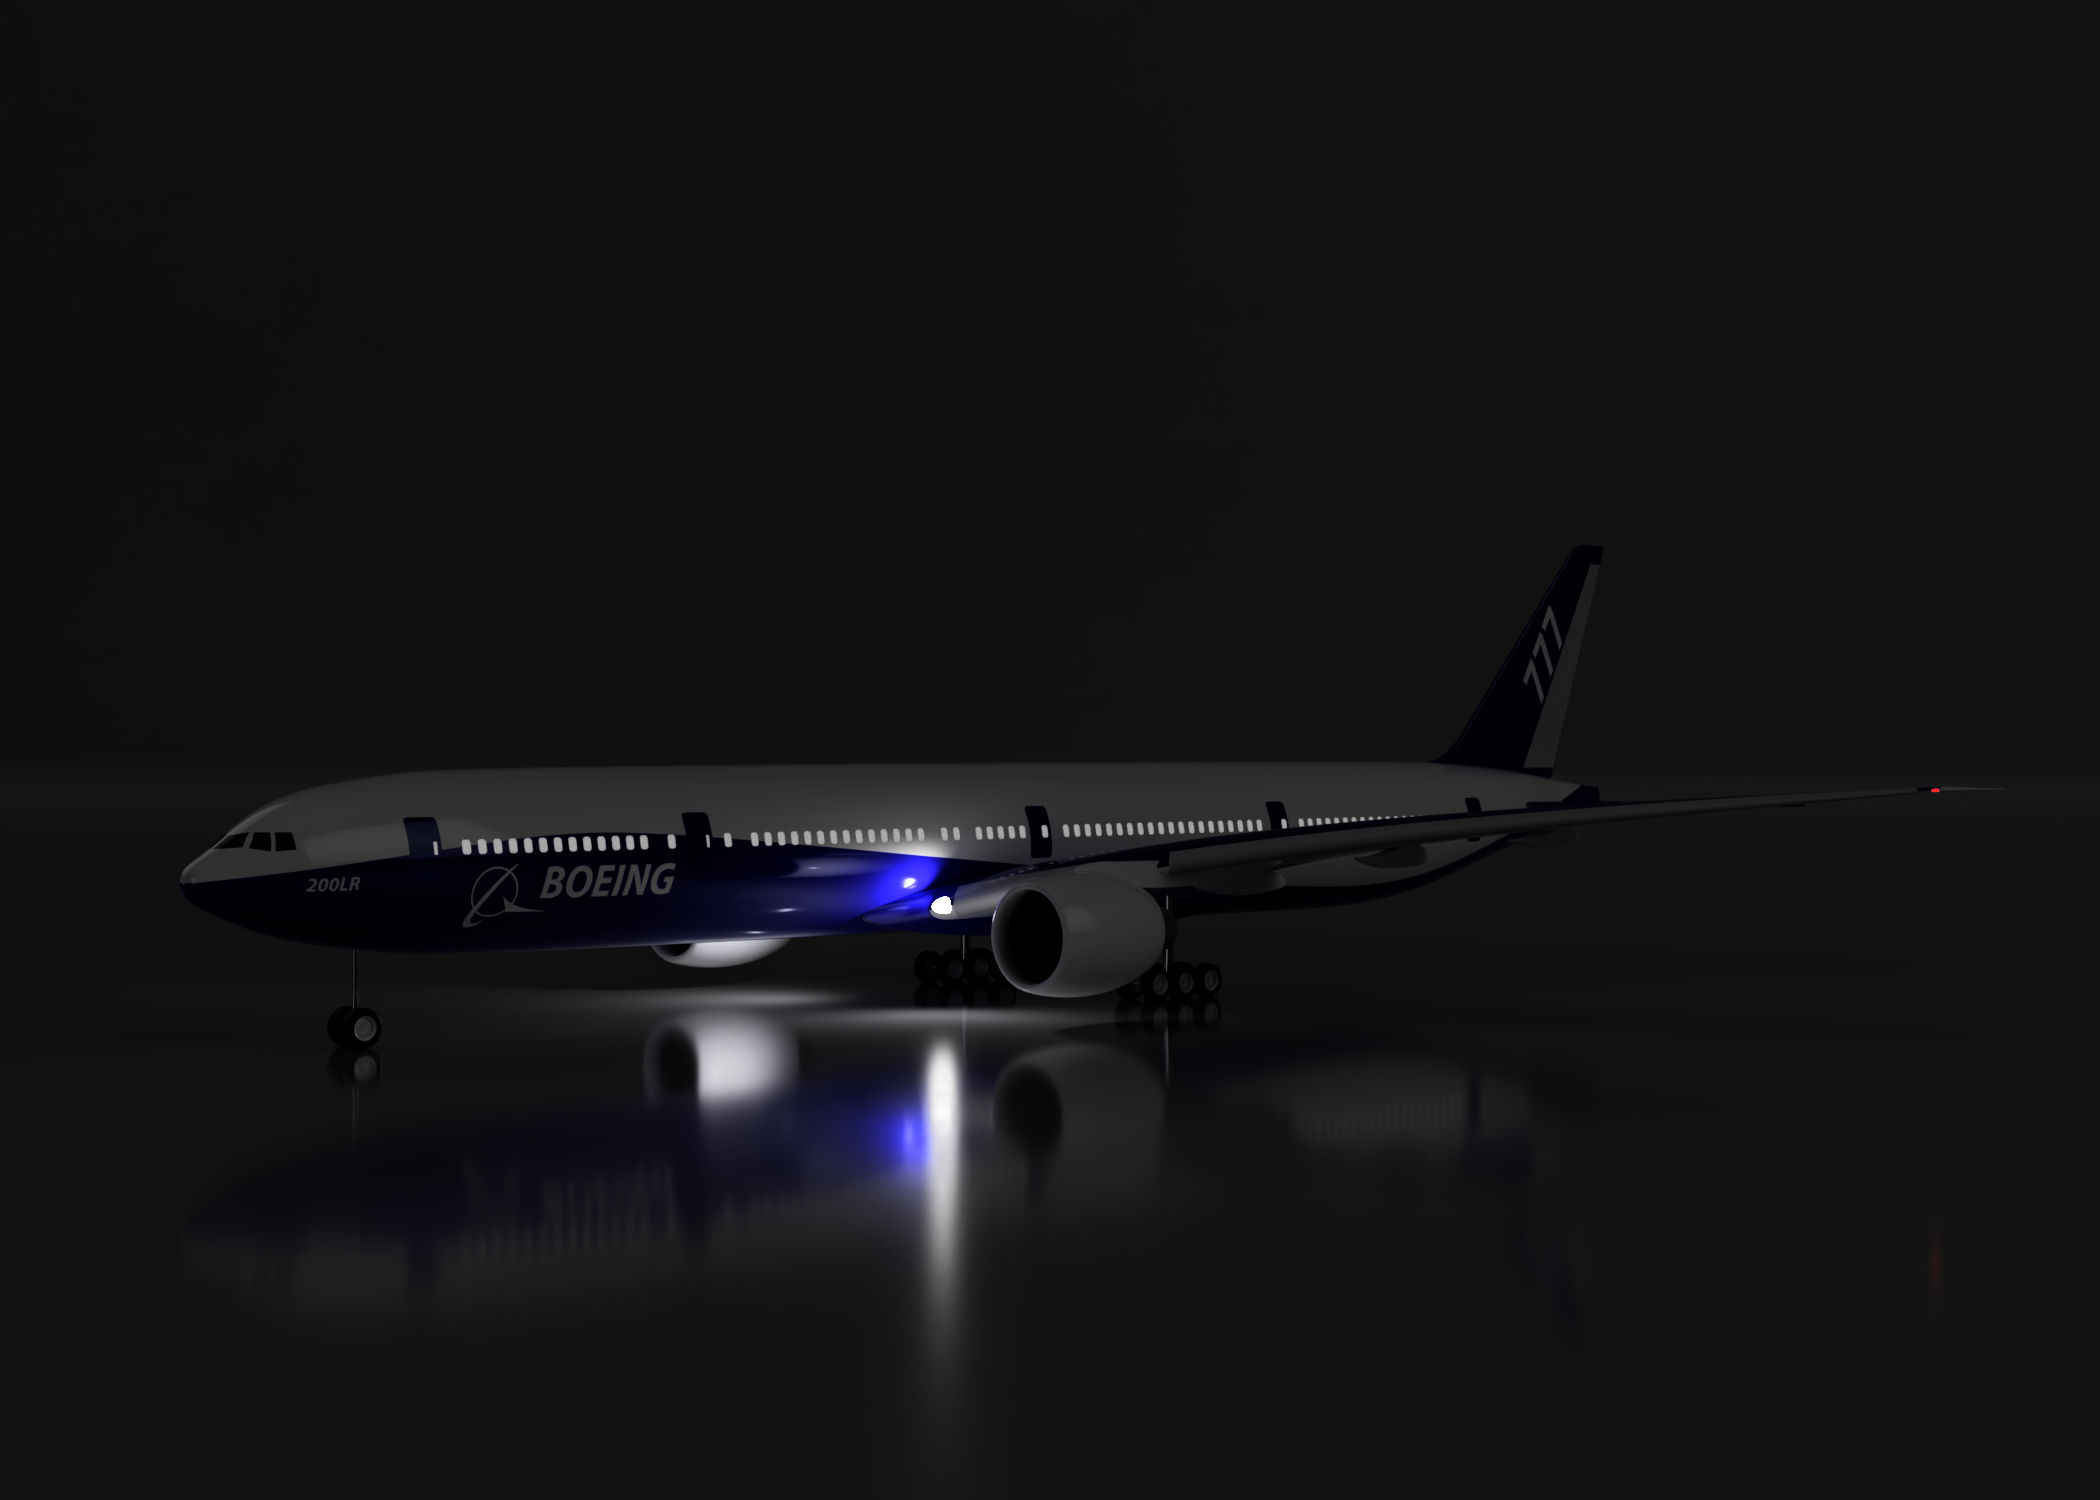 Aeroplane-black-2018-jun-05-08-34-17am-000-customizedview1315125154-jpg-3500-3500